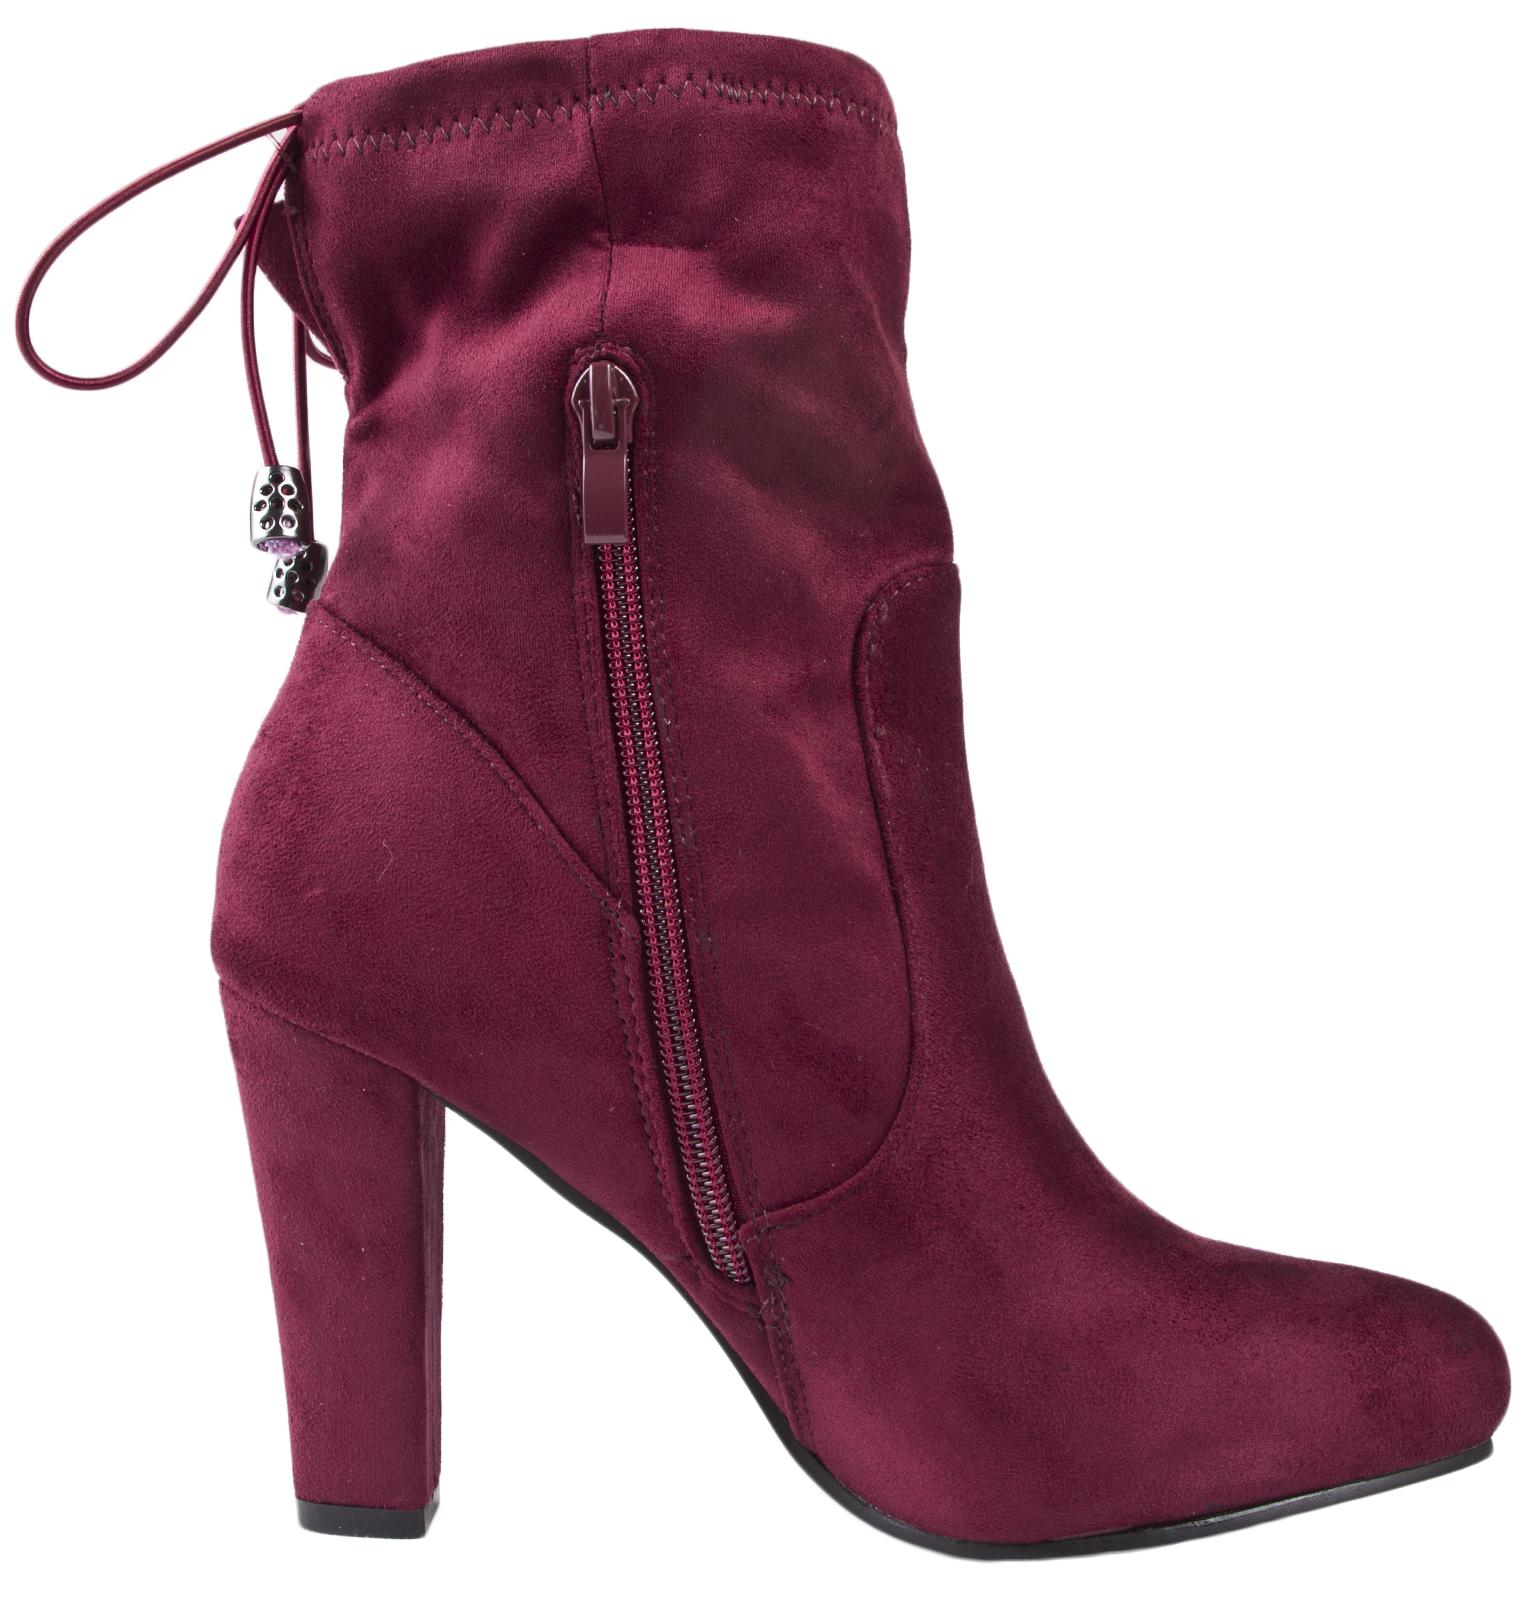 womens high heel ankle boots adjustable tie top faux suede